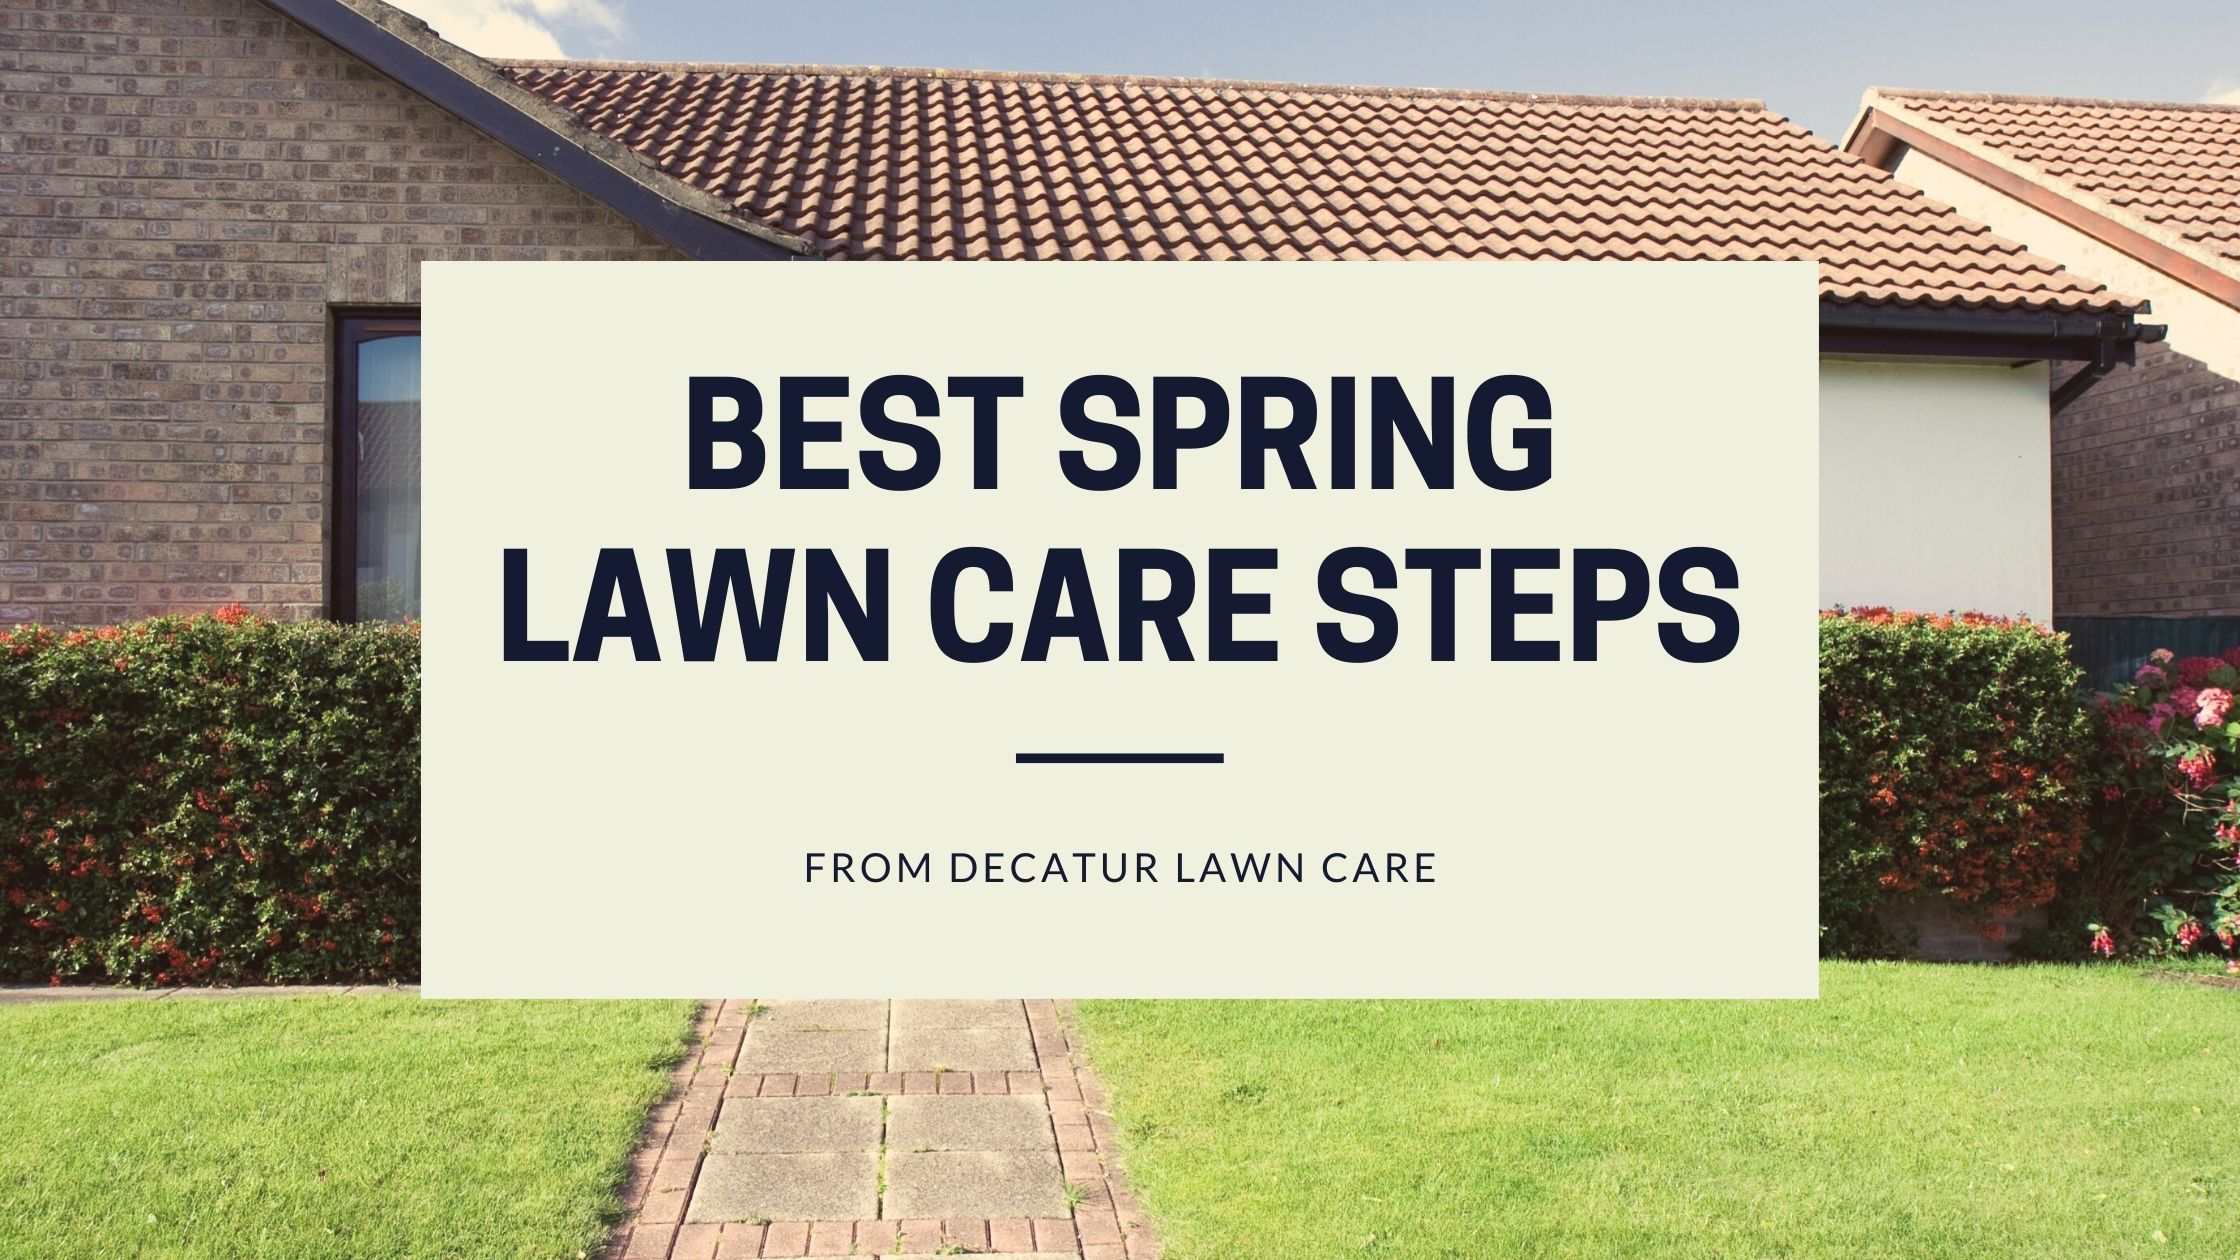 Best Spring Lawn Care Tips from Decatur Lawn Care